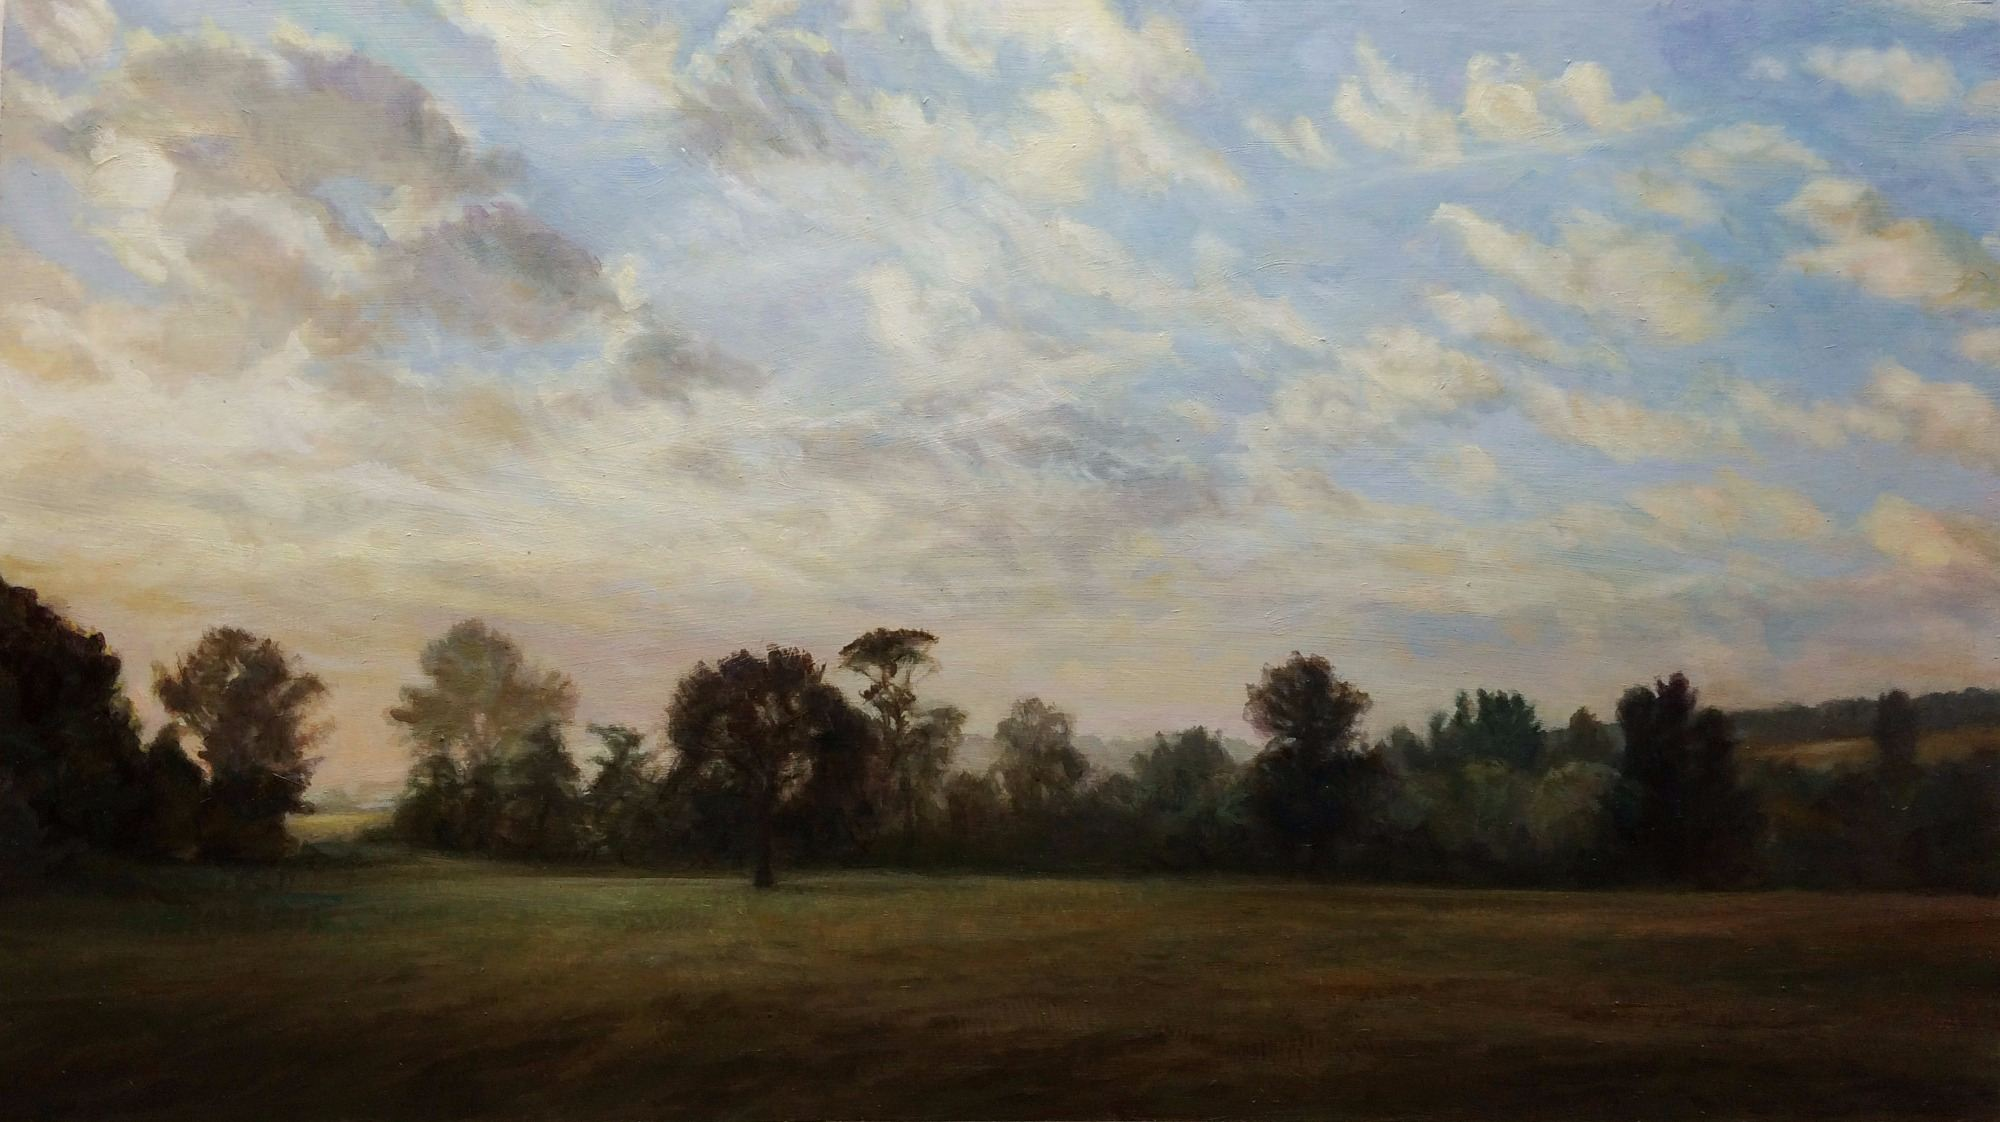 Sarah Spencer - End of the Day Trees